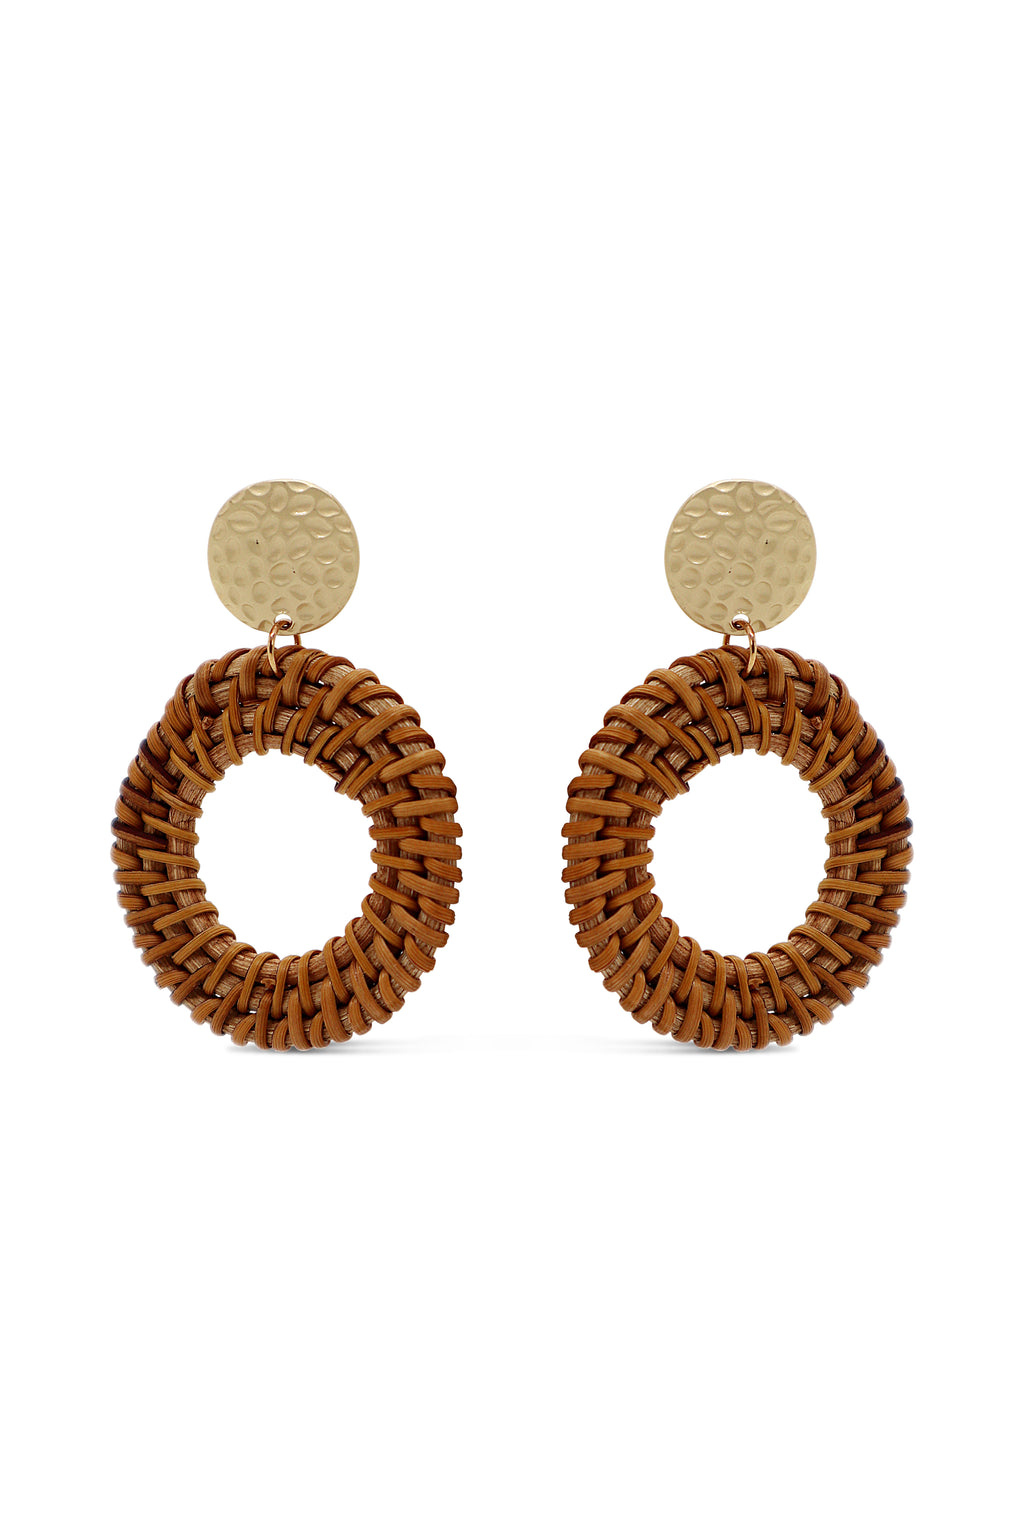 Round Rattan Earrings - Islandlace